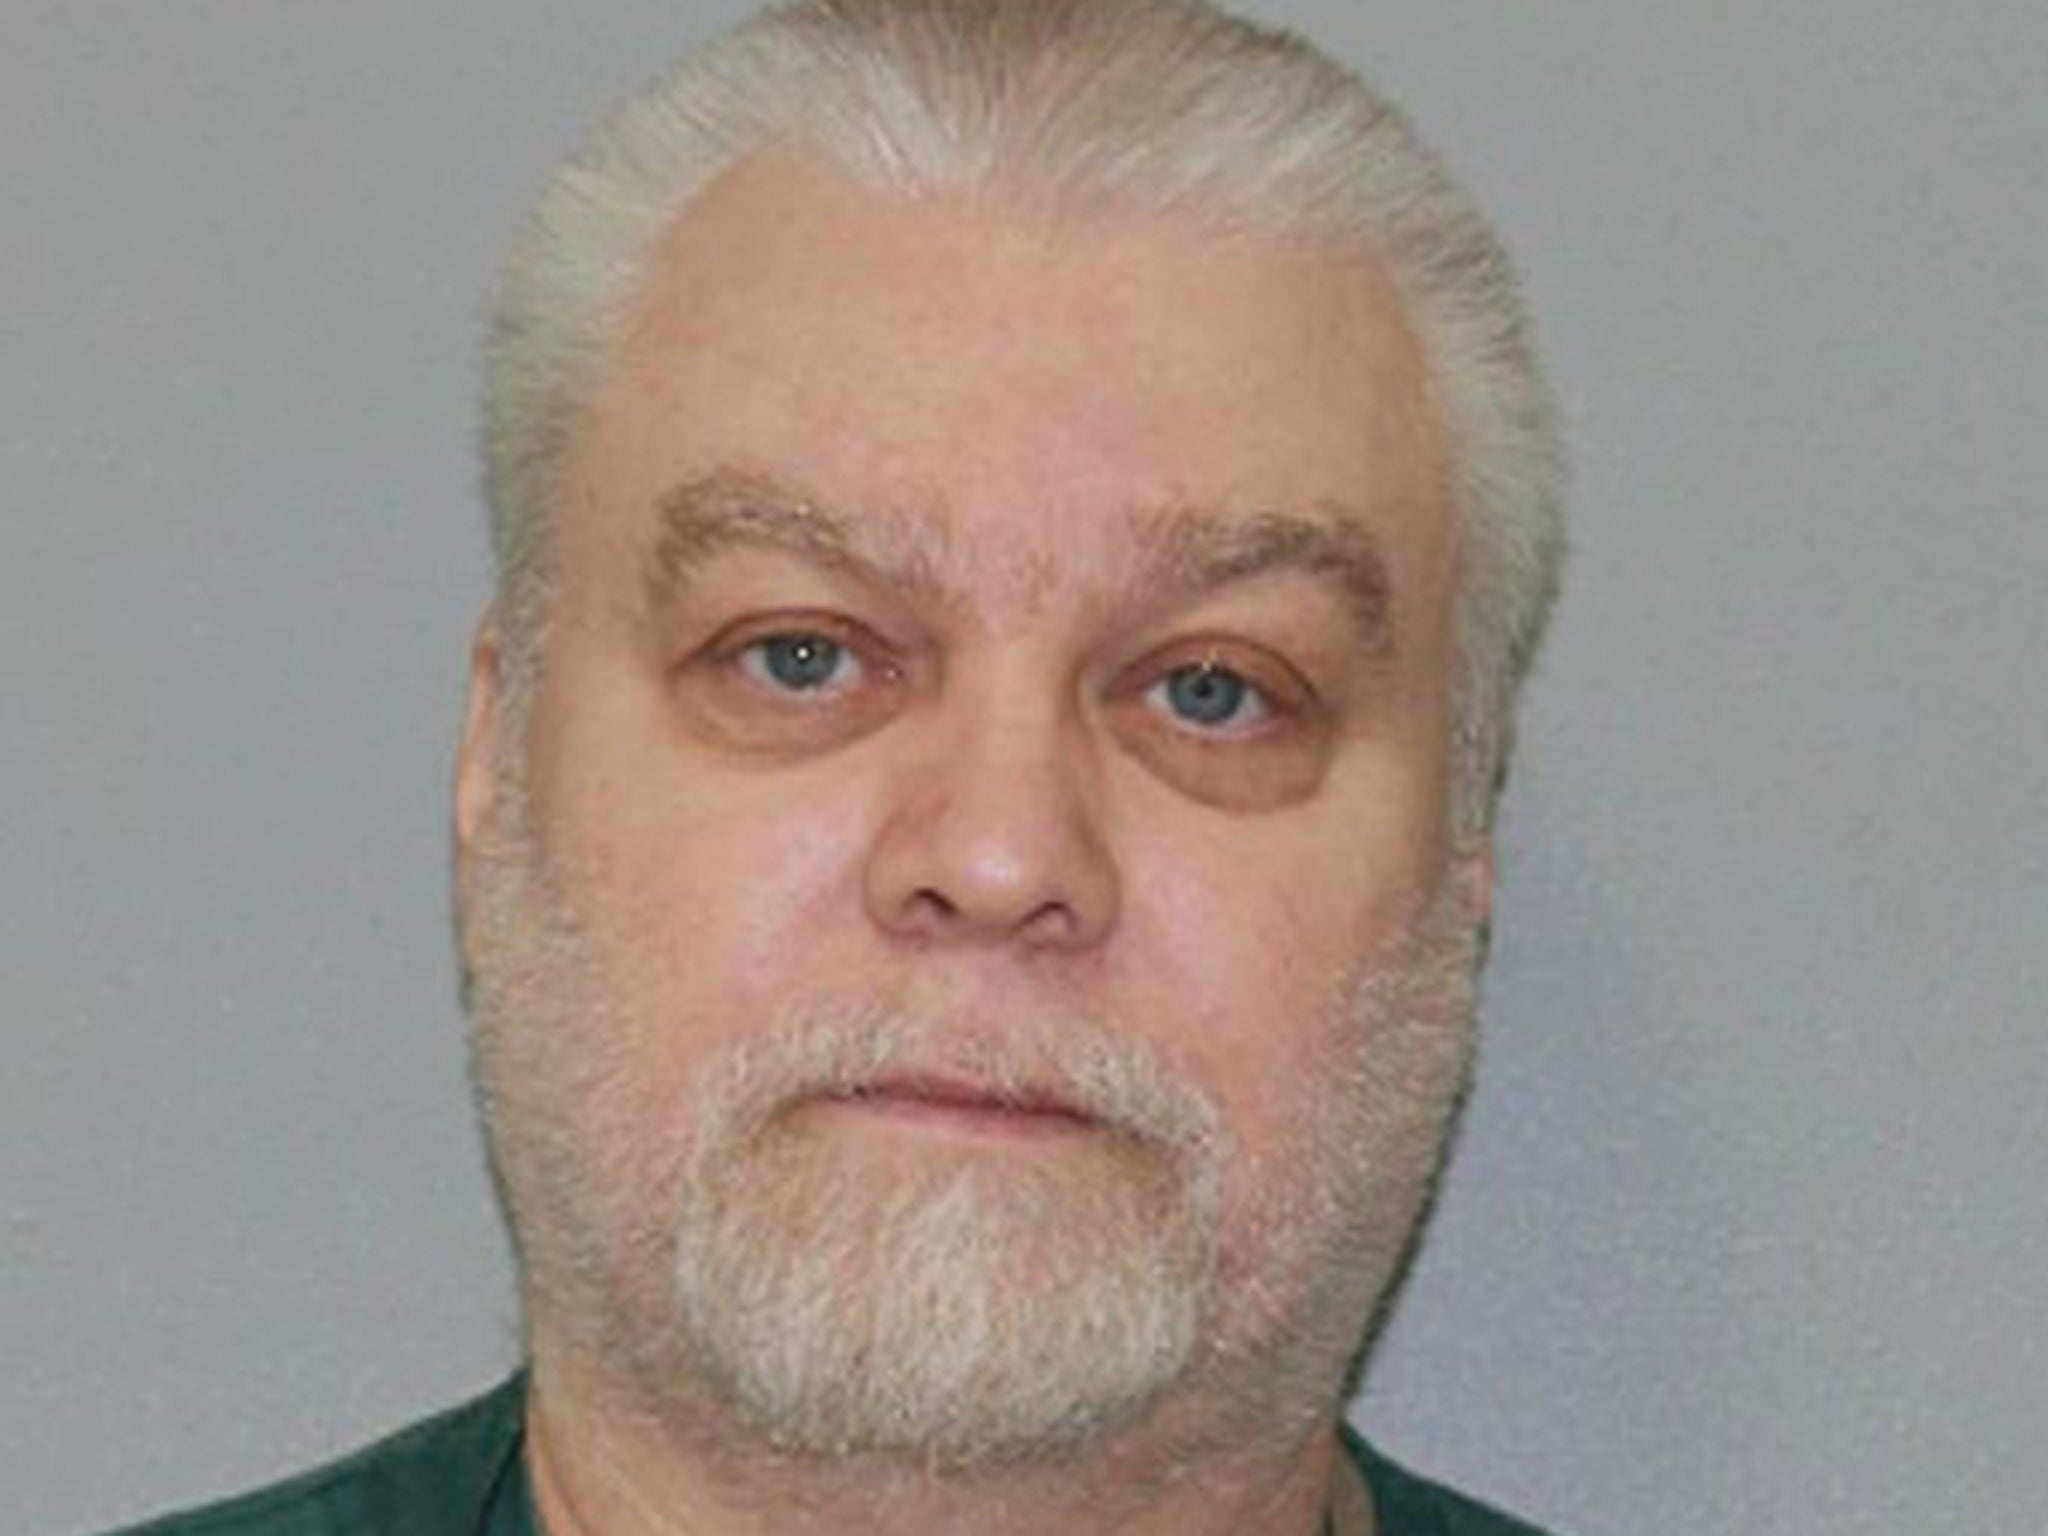 Making a murderer reddit claims to unearth new evidence that making a murderers steven avery is not innocent says ex fiancee ccuart Image collections